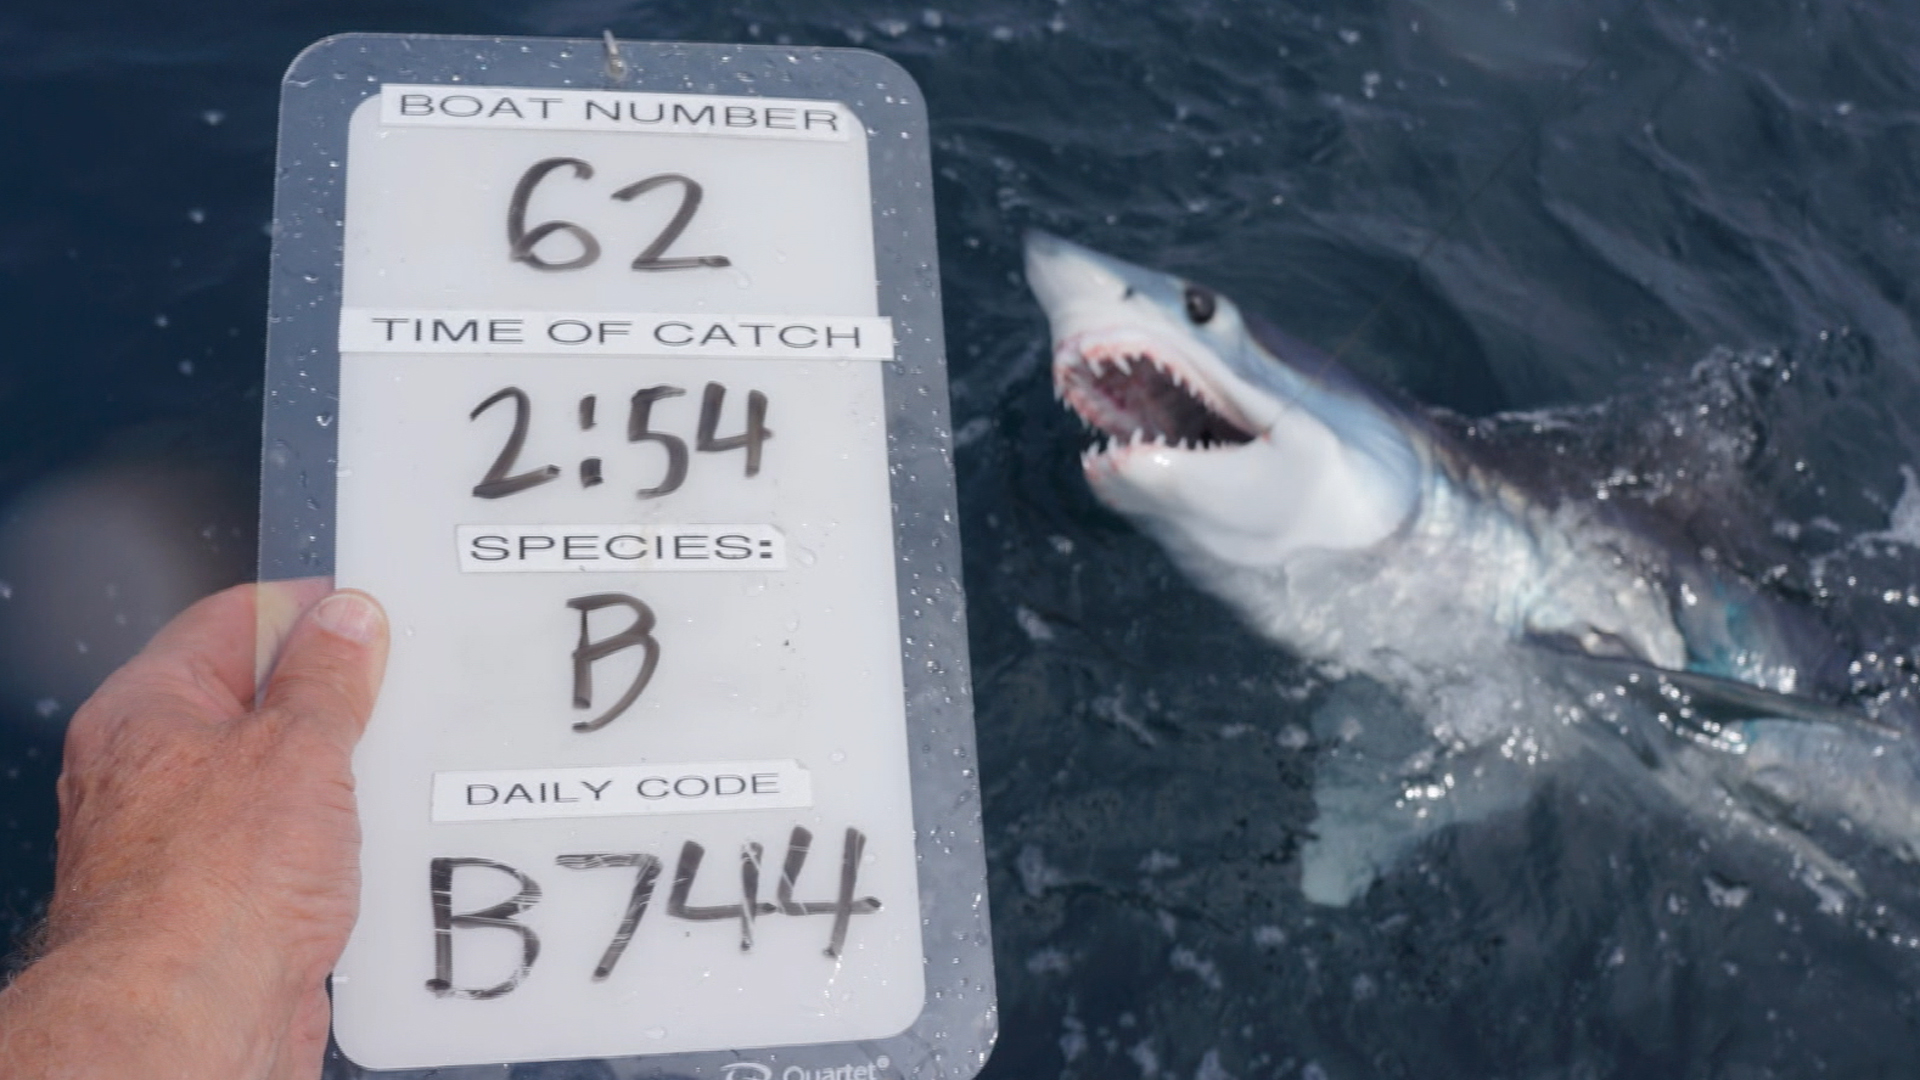 Biologists tag shark to learn about fish with a bad rap